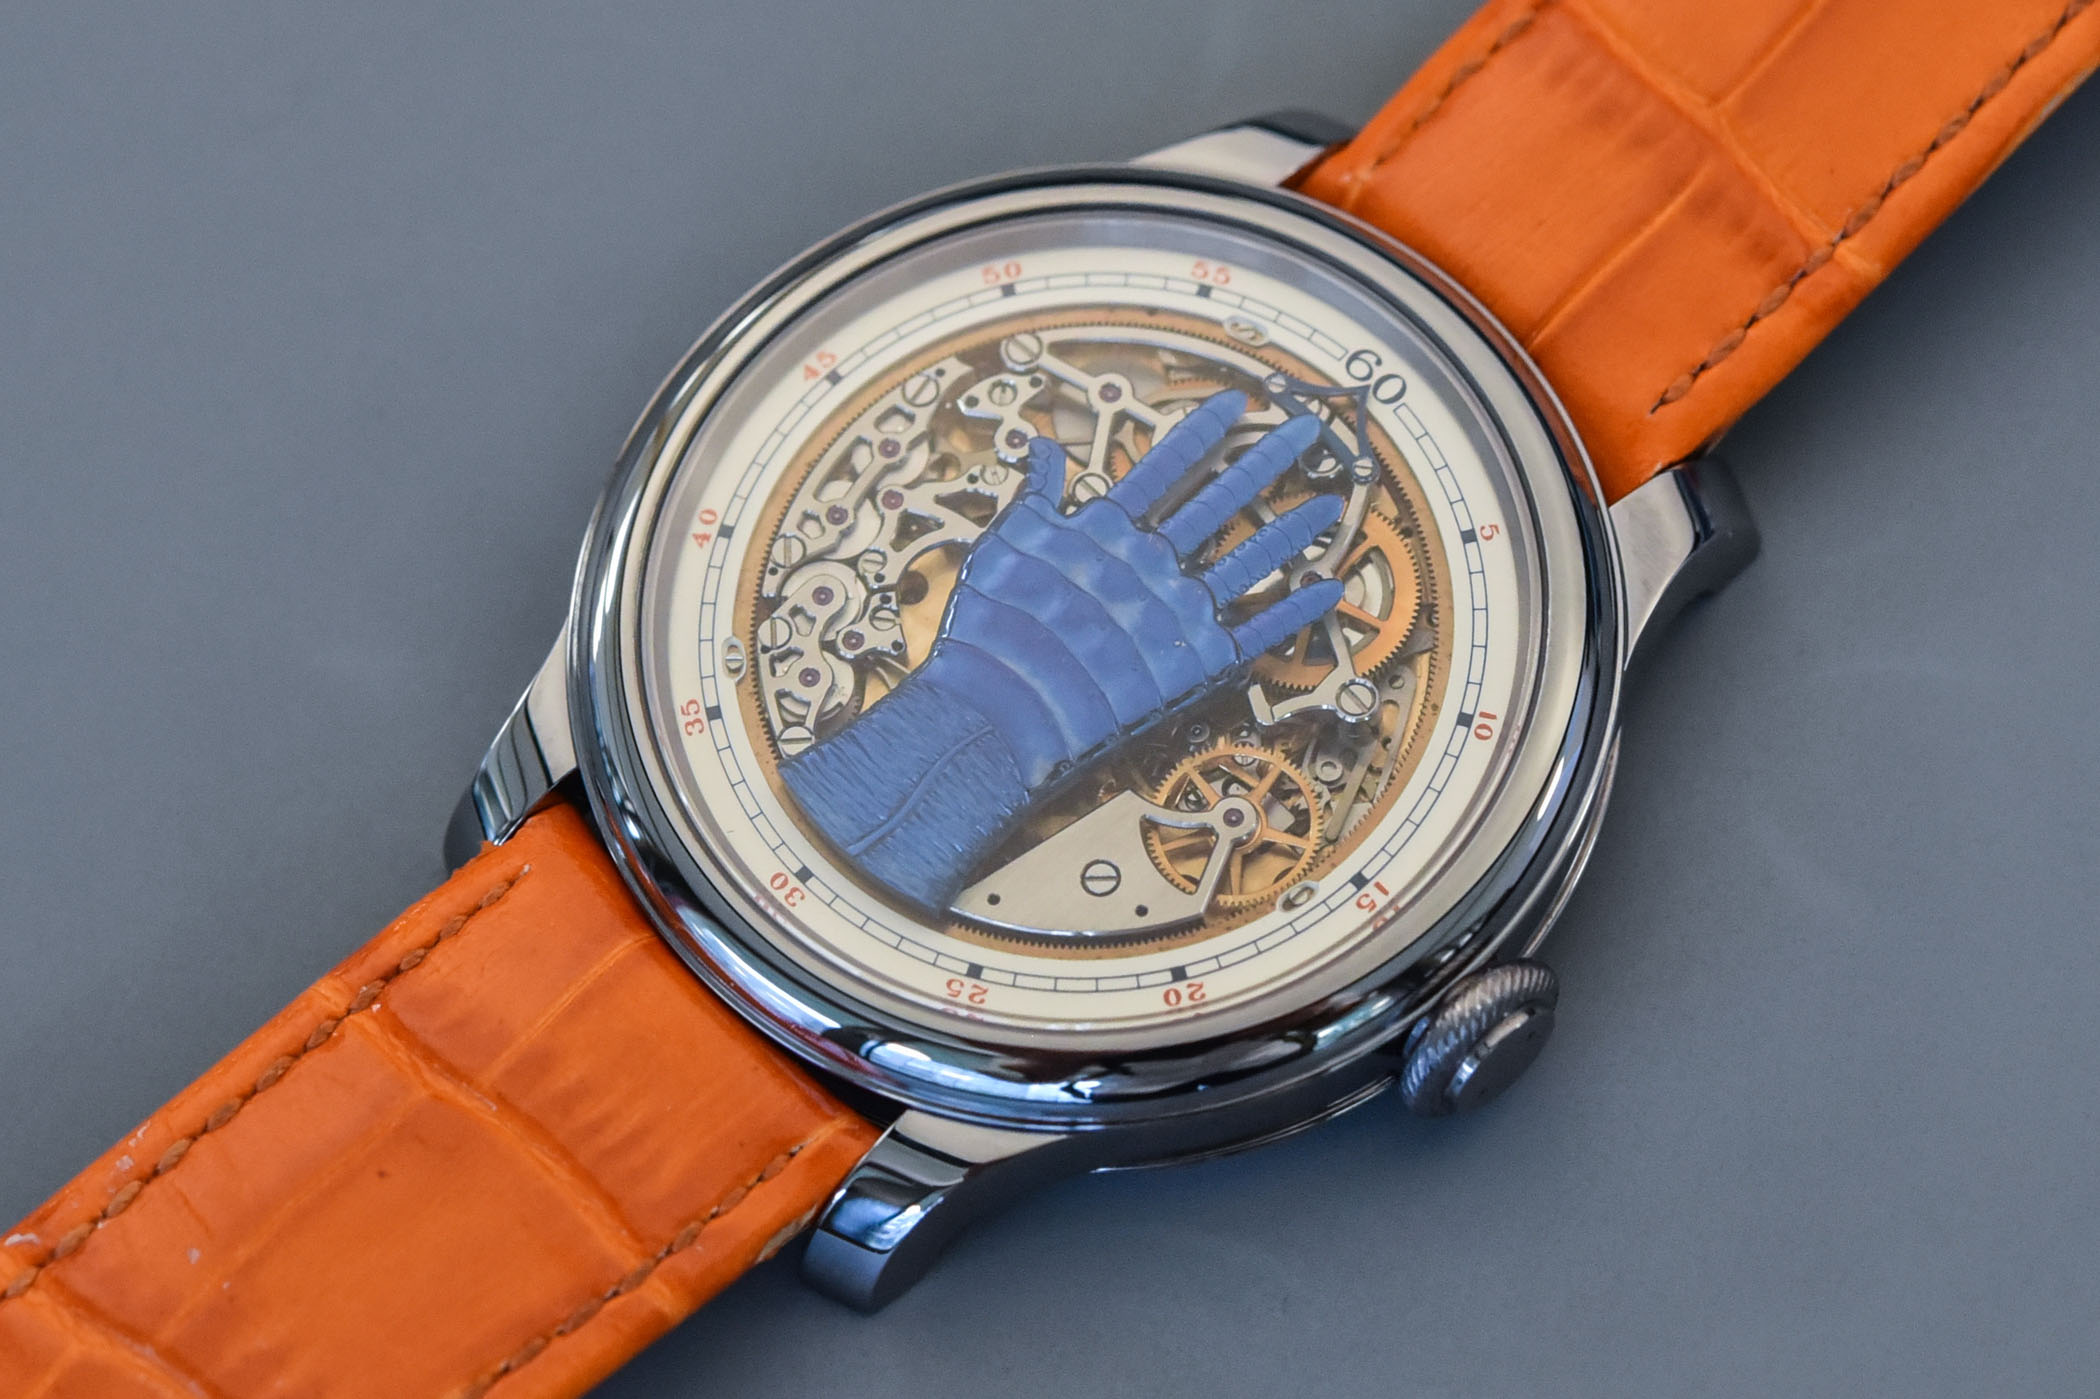 FP Journe FCC Blue Only Watch 2021